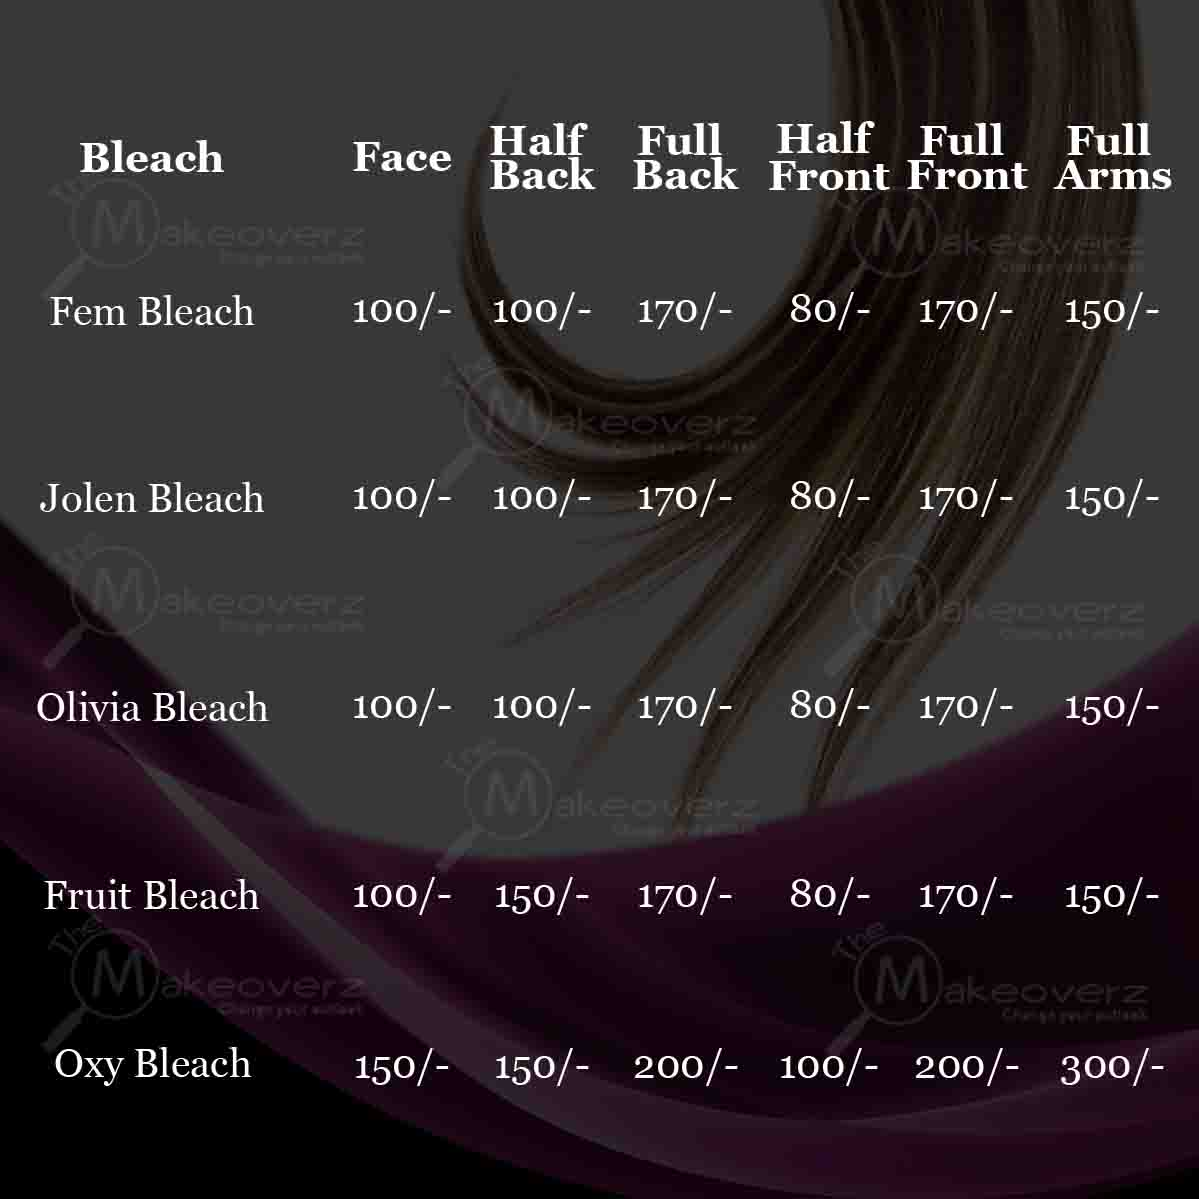 bleach rate list by exclusive makeovers dwarka